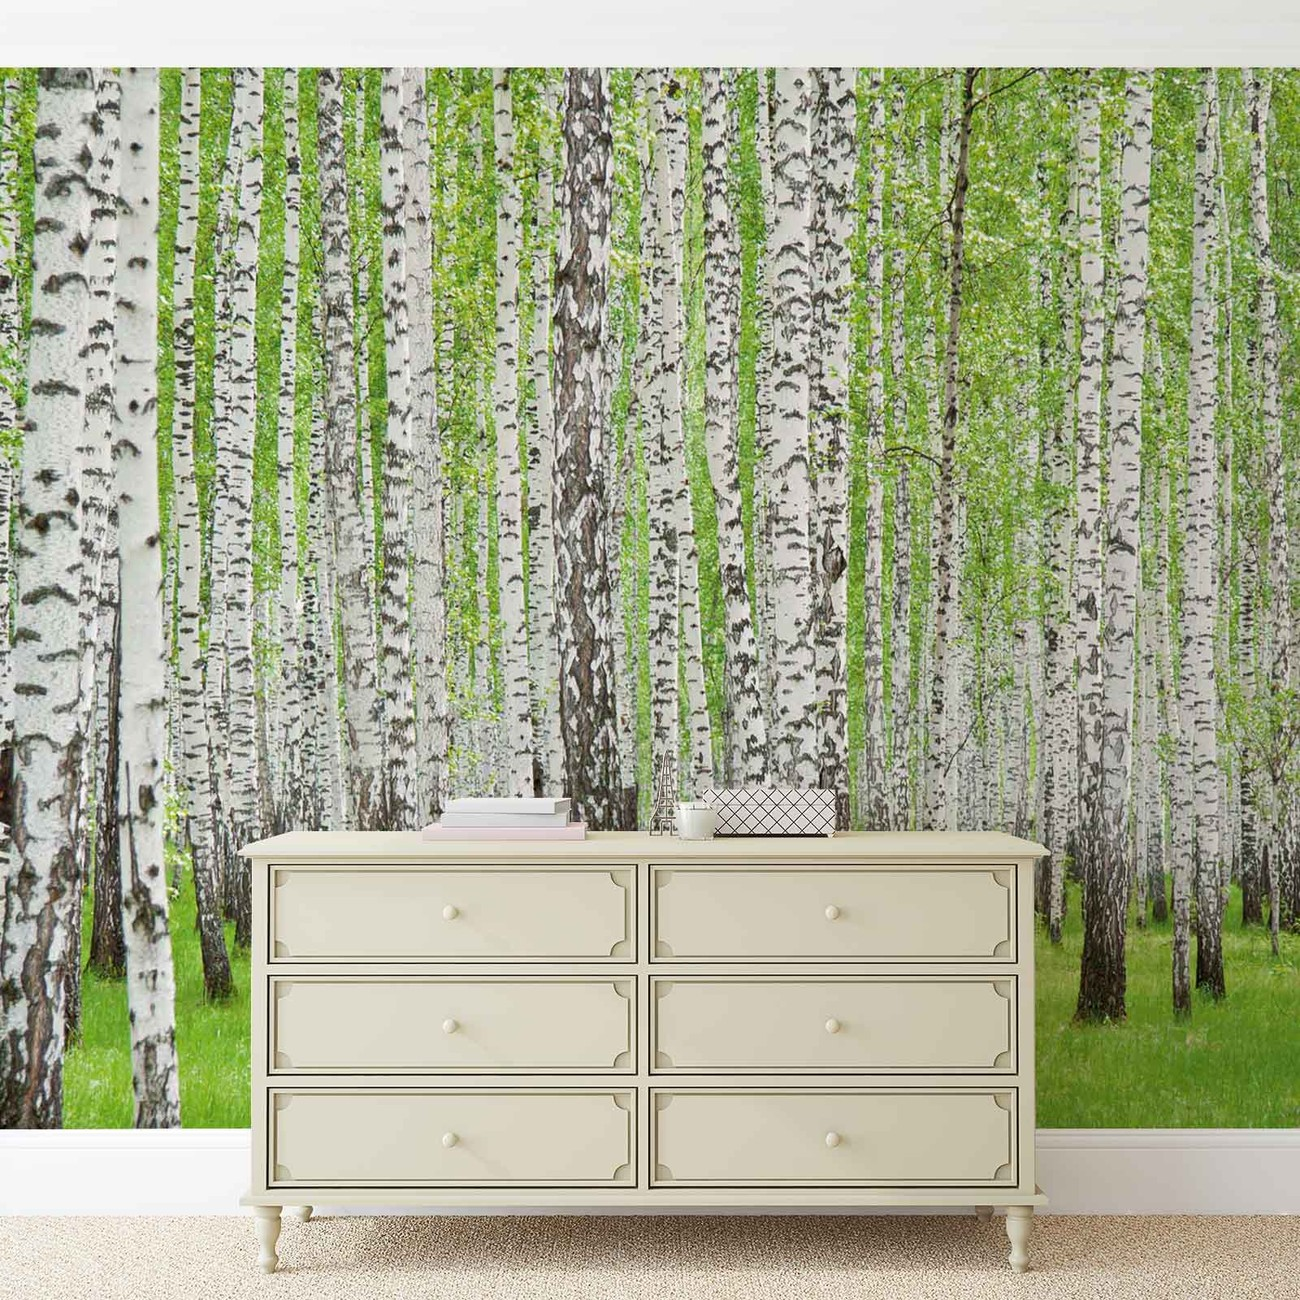 fototapete tapete wald b ume natur bei europosters kostenloser versand. Black Bedroom Furniture Sets. Home Design Ideas